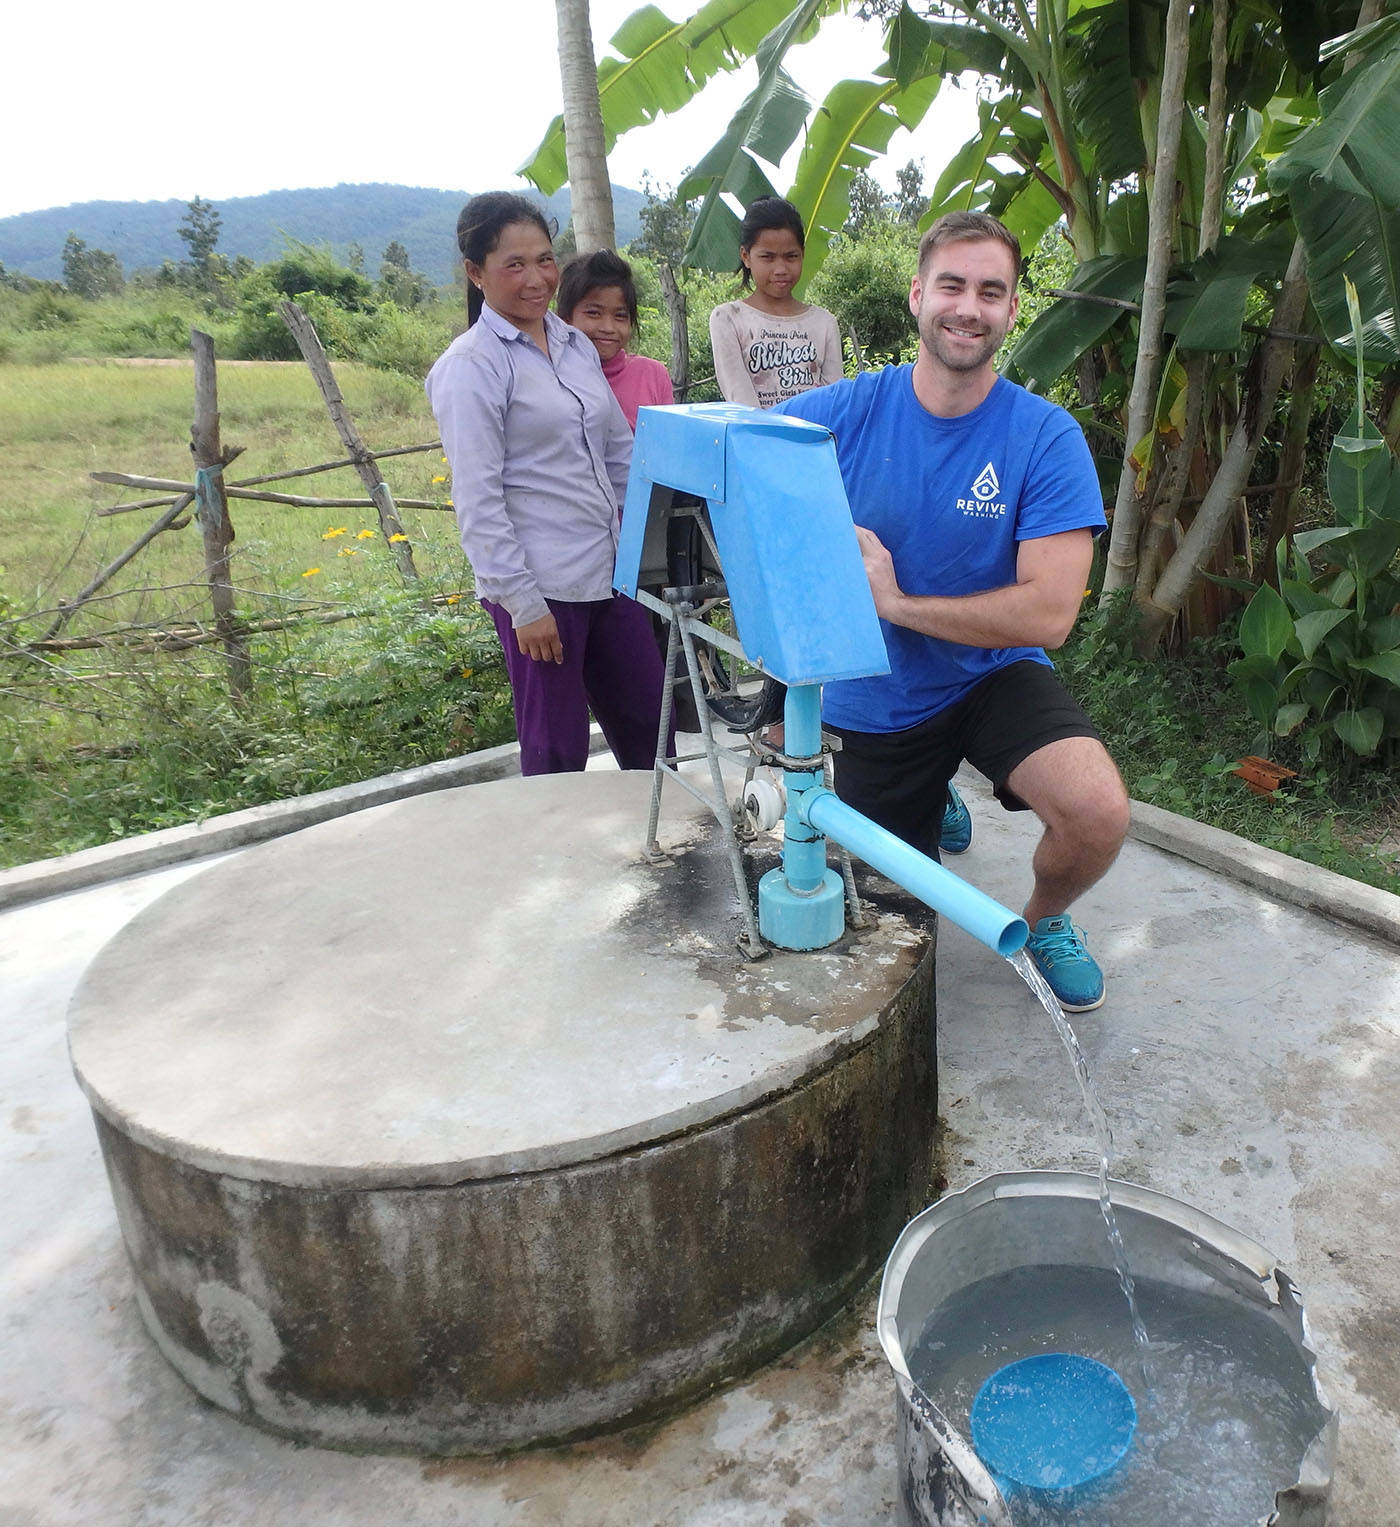 Revive Washing owner David Moerman visited Pursat, Cambodia, where he sponsored two water wells for local families there.